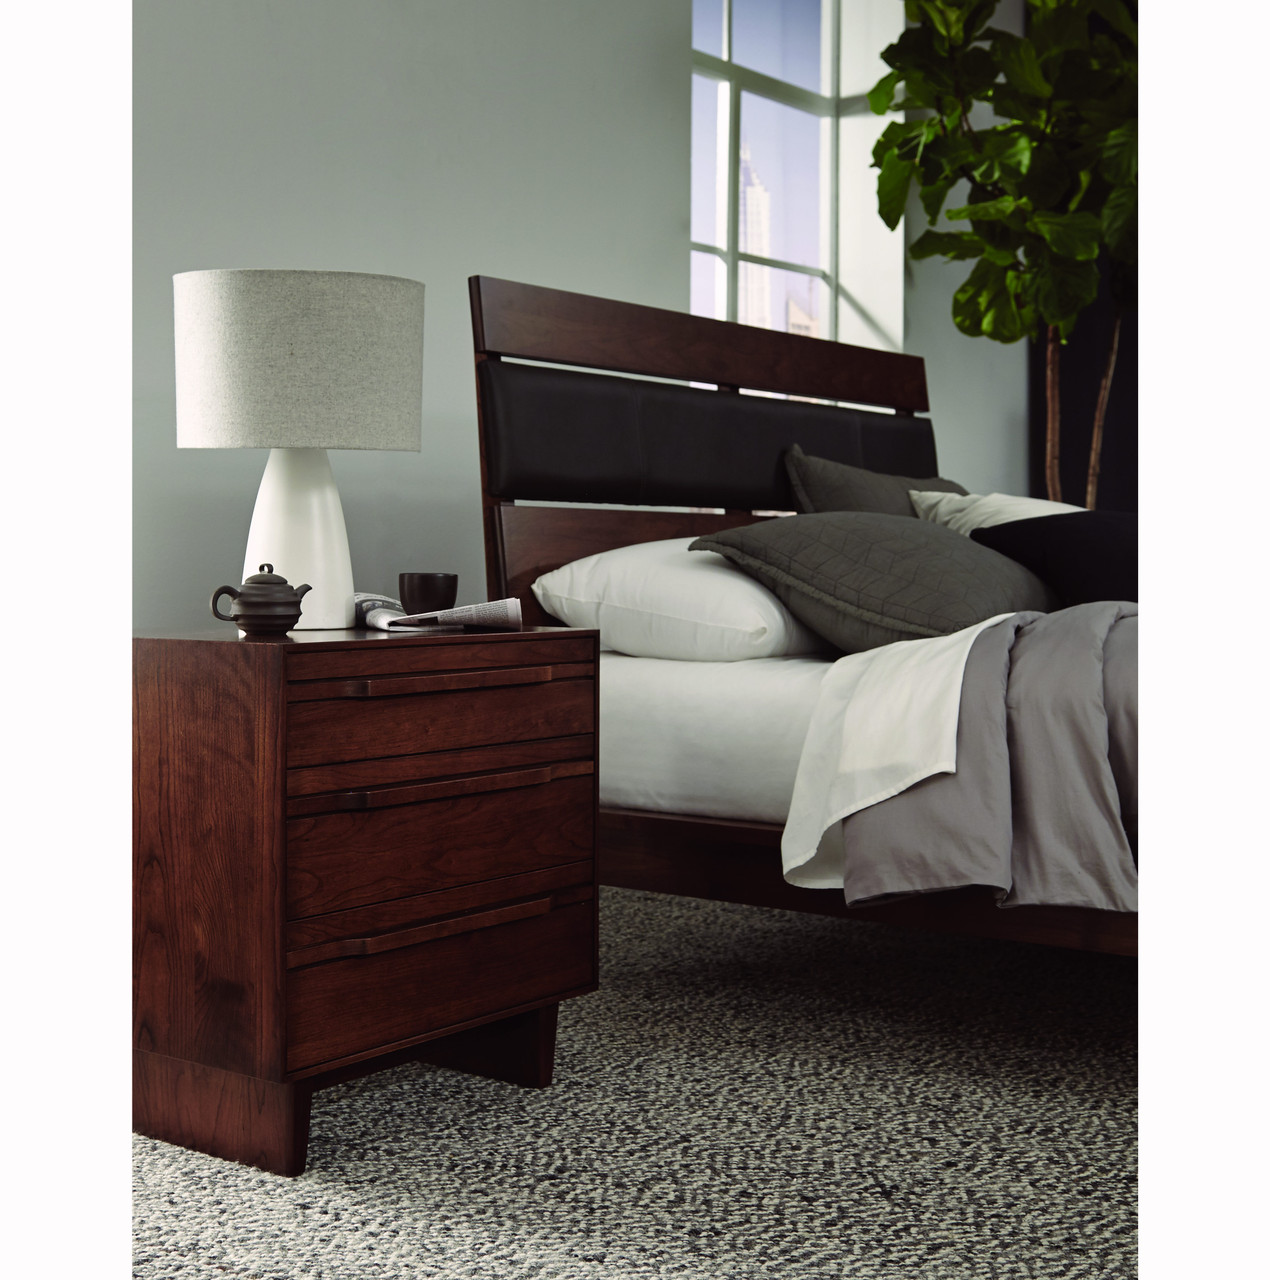 CAMBER UPHOLSTERED BED